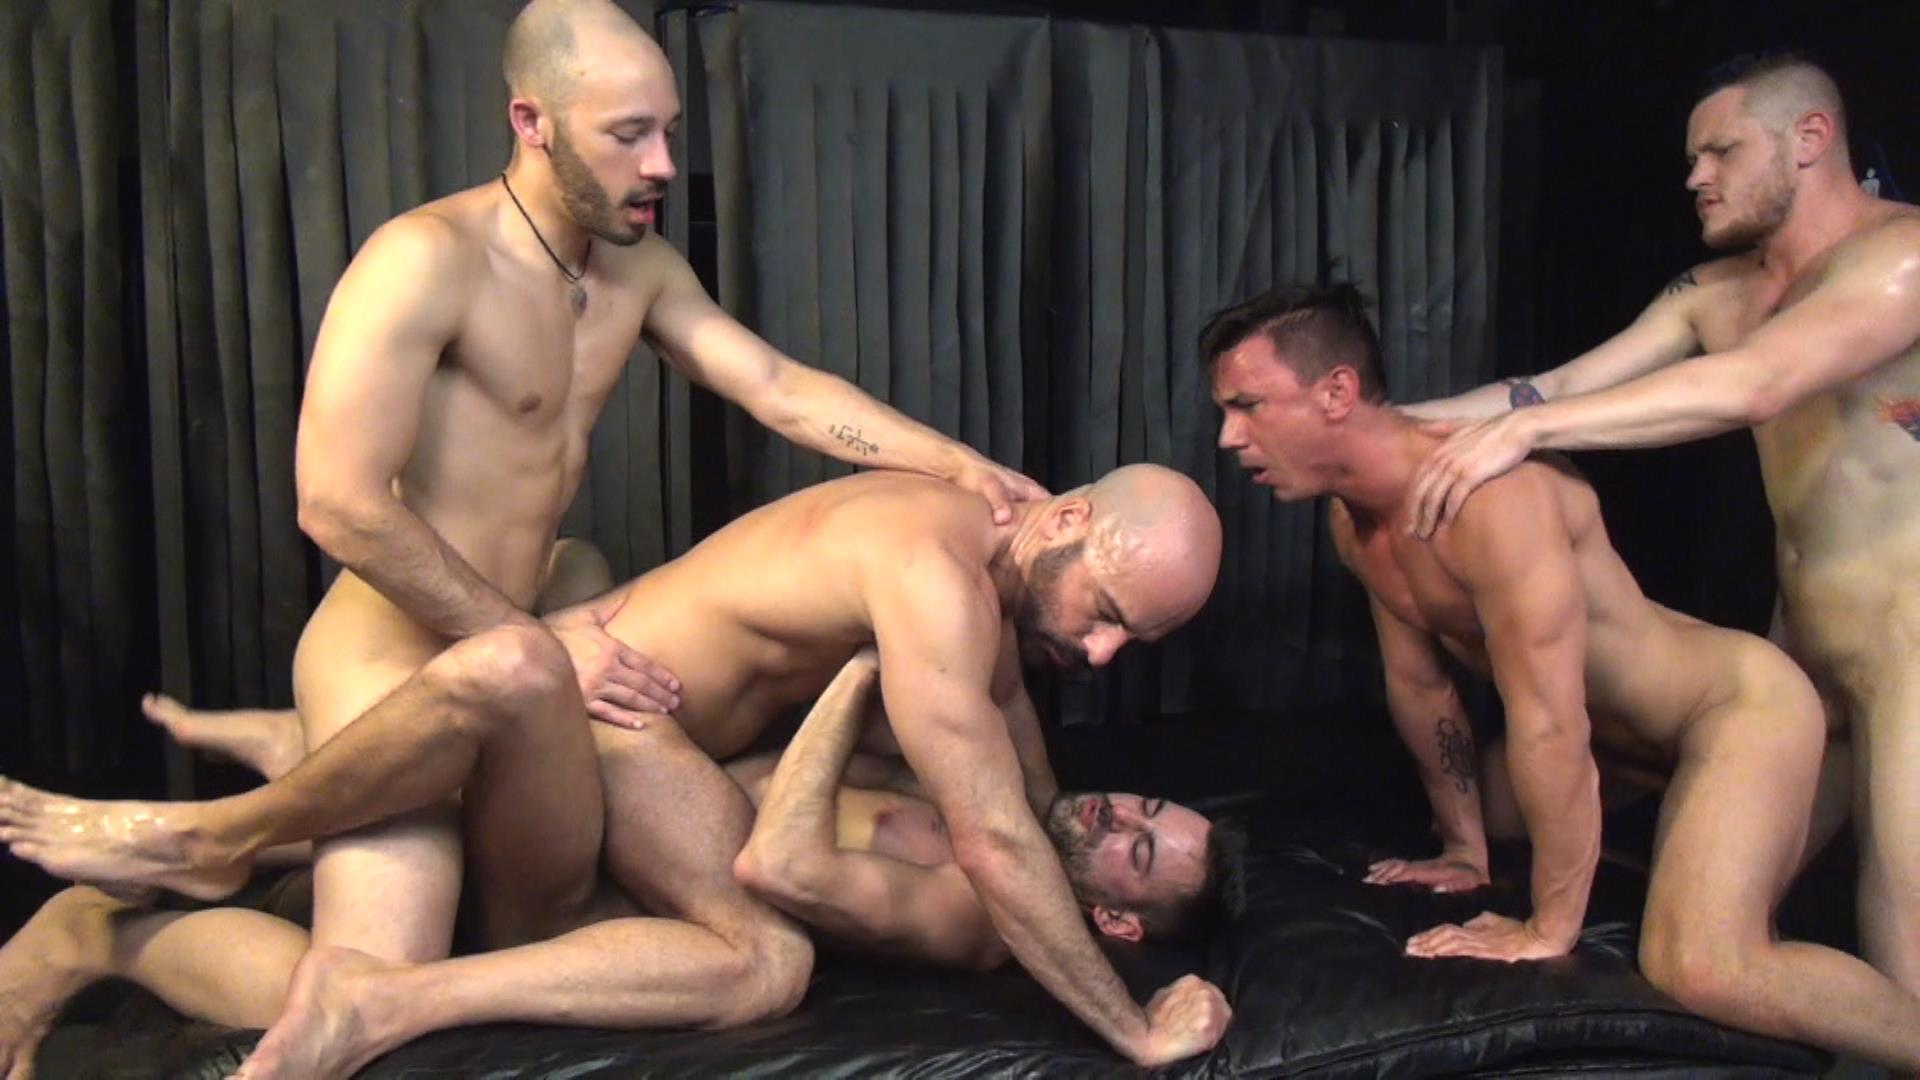 Raw-Fuck-Club-Blue-Bailey-and-Dylan-Strokes-and-Adam-Russo-and-Dean-Brody-and-Jay-Brix-Bareback-Orgy-Amateur-Gay-Porn-7 Adam Russo Getting Double Penetrated At A Bareback Sex Party